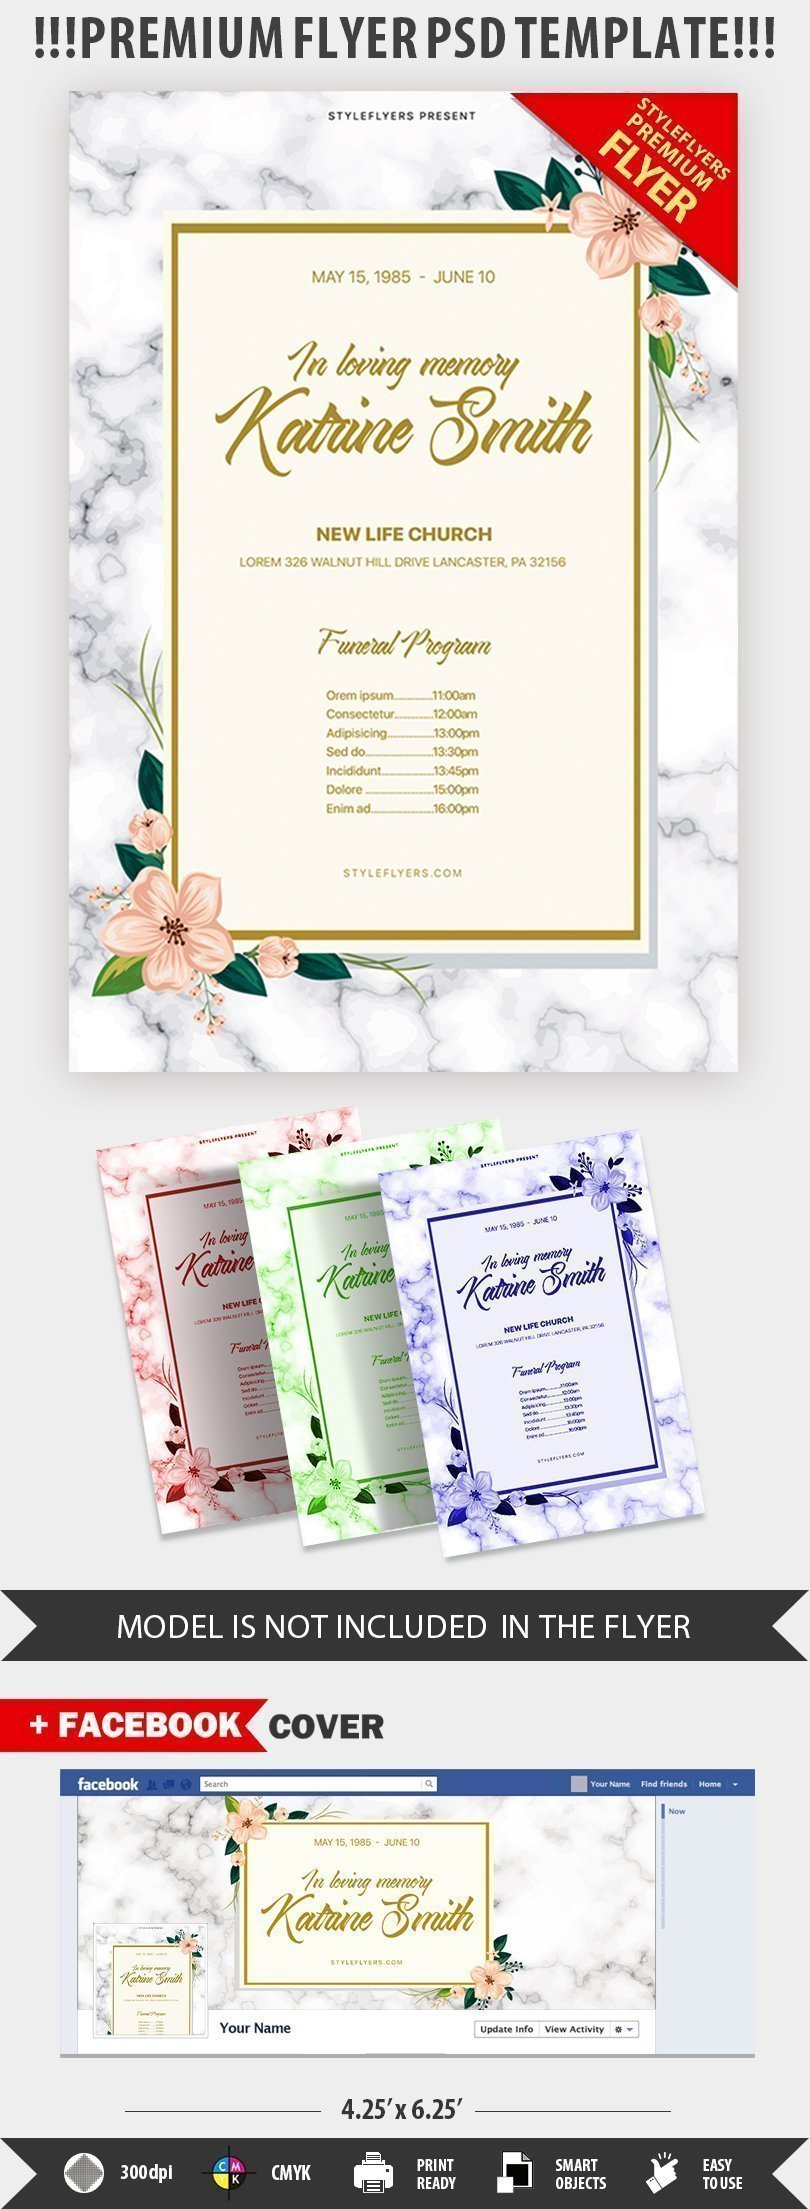 Funeral Program PSD Flyer Template Even The Can Look Trendy And Modern If You Want To Show Your True Taste In Organization